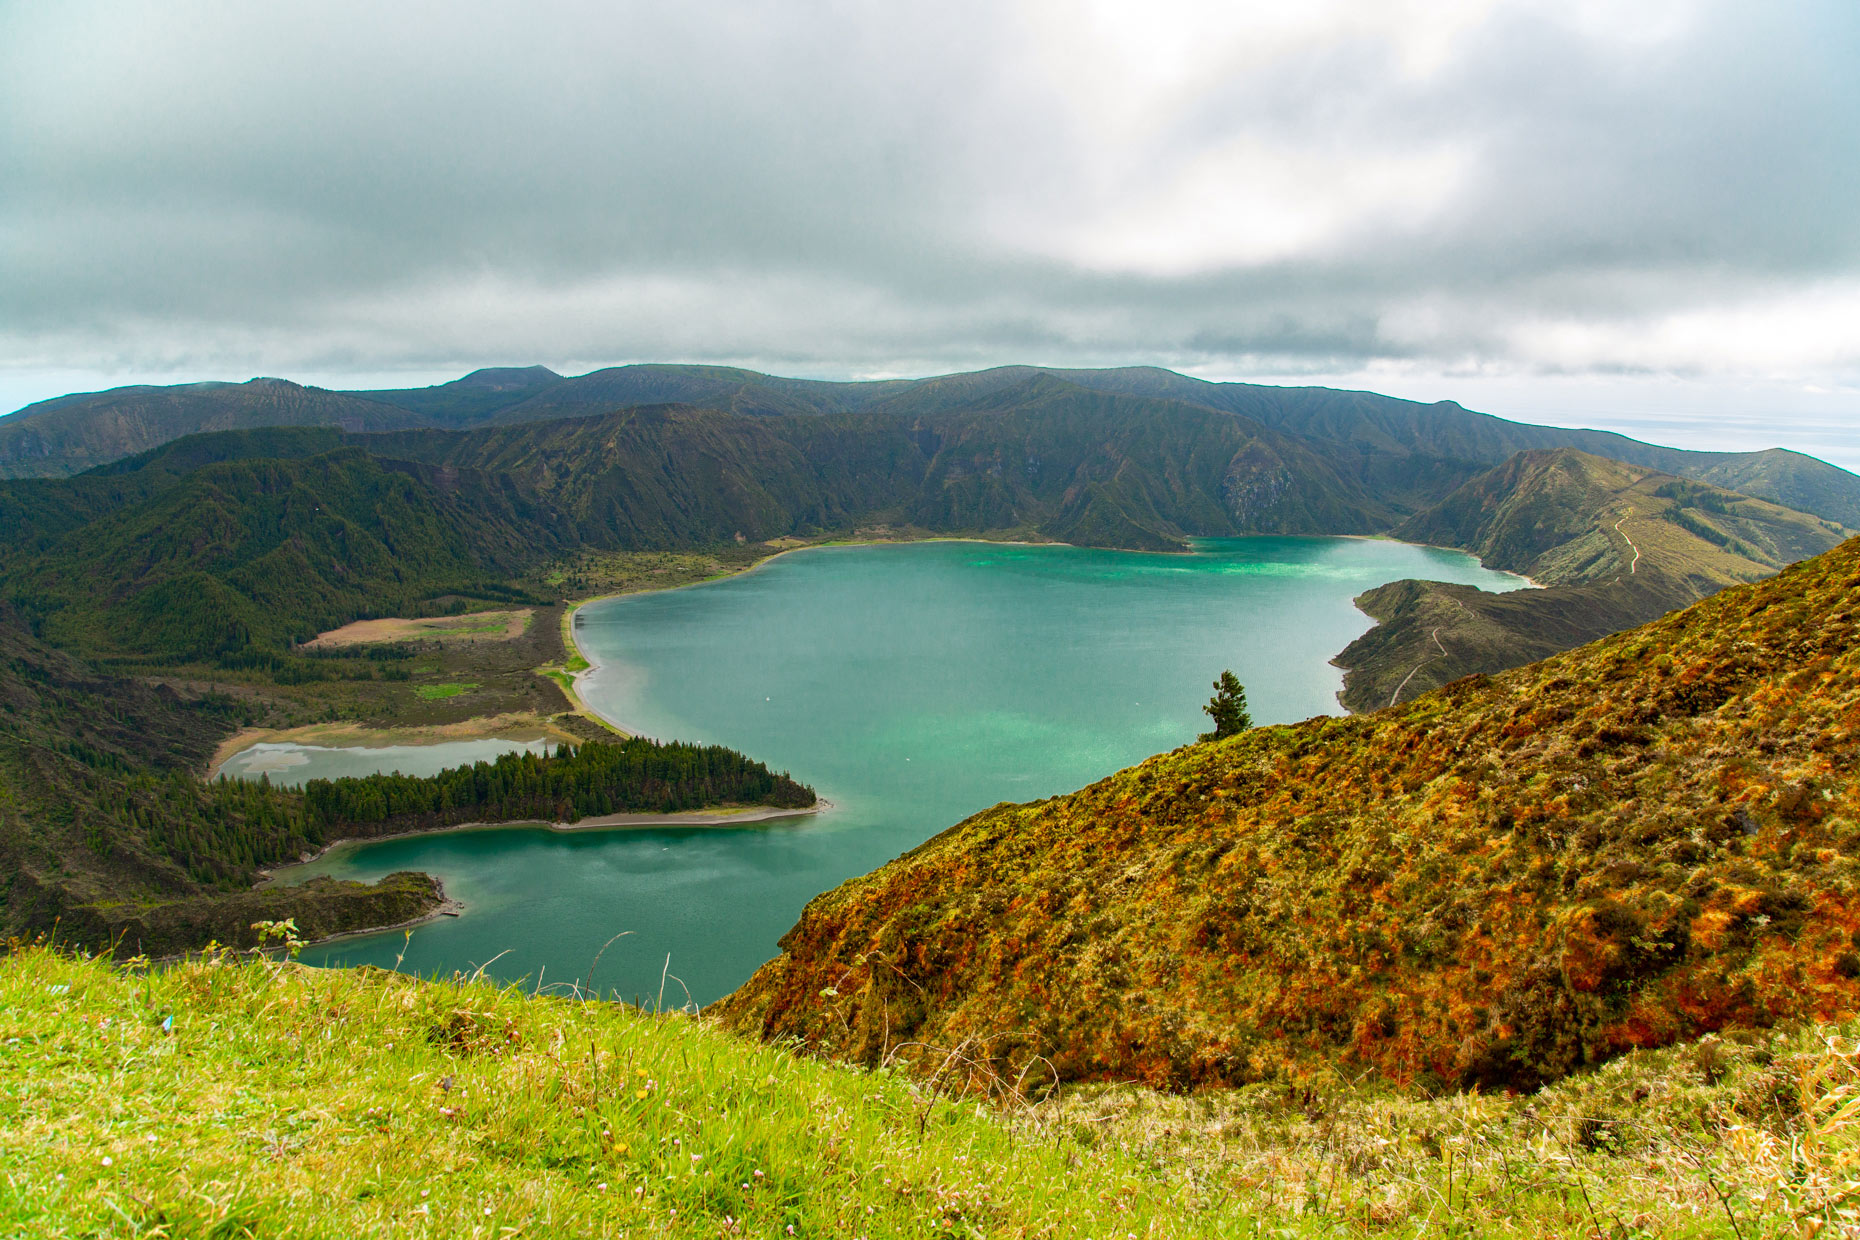 Sao-Miguel-Azores-Logoa-do-Fogo-Portugal-Caryn-B-Davis-Travel-Photography